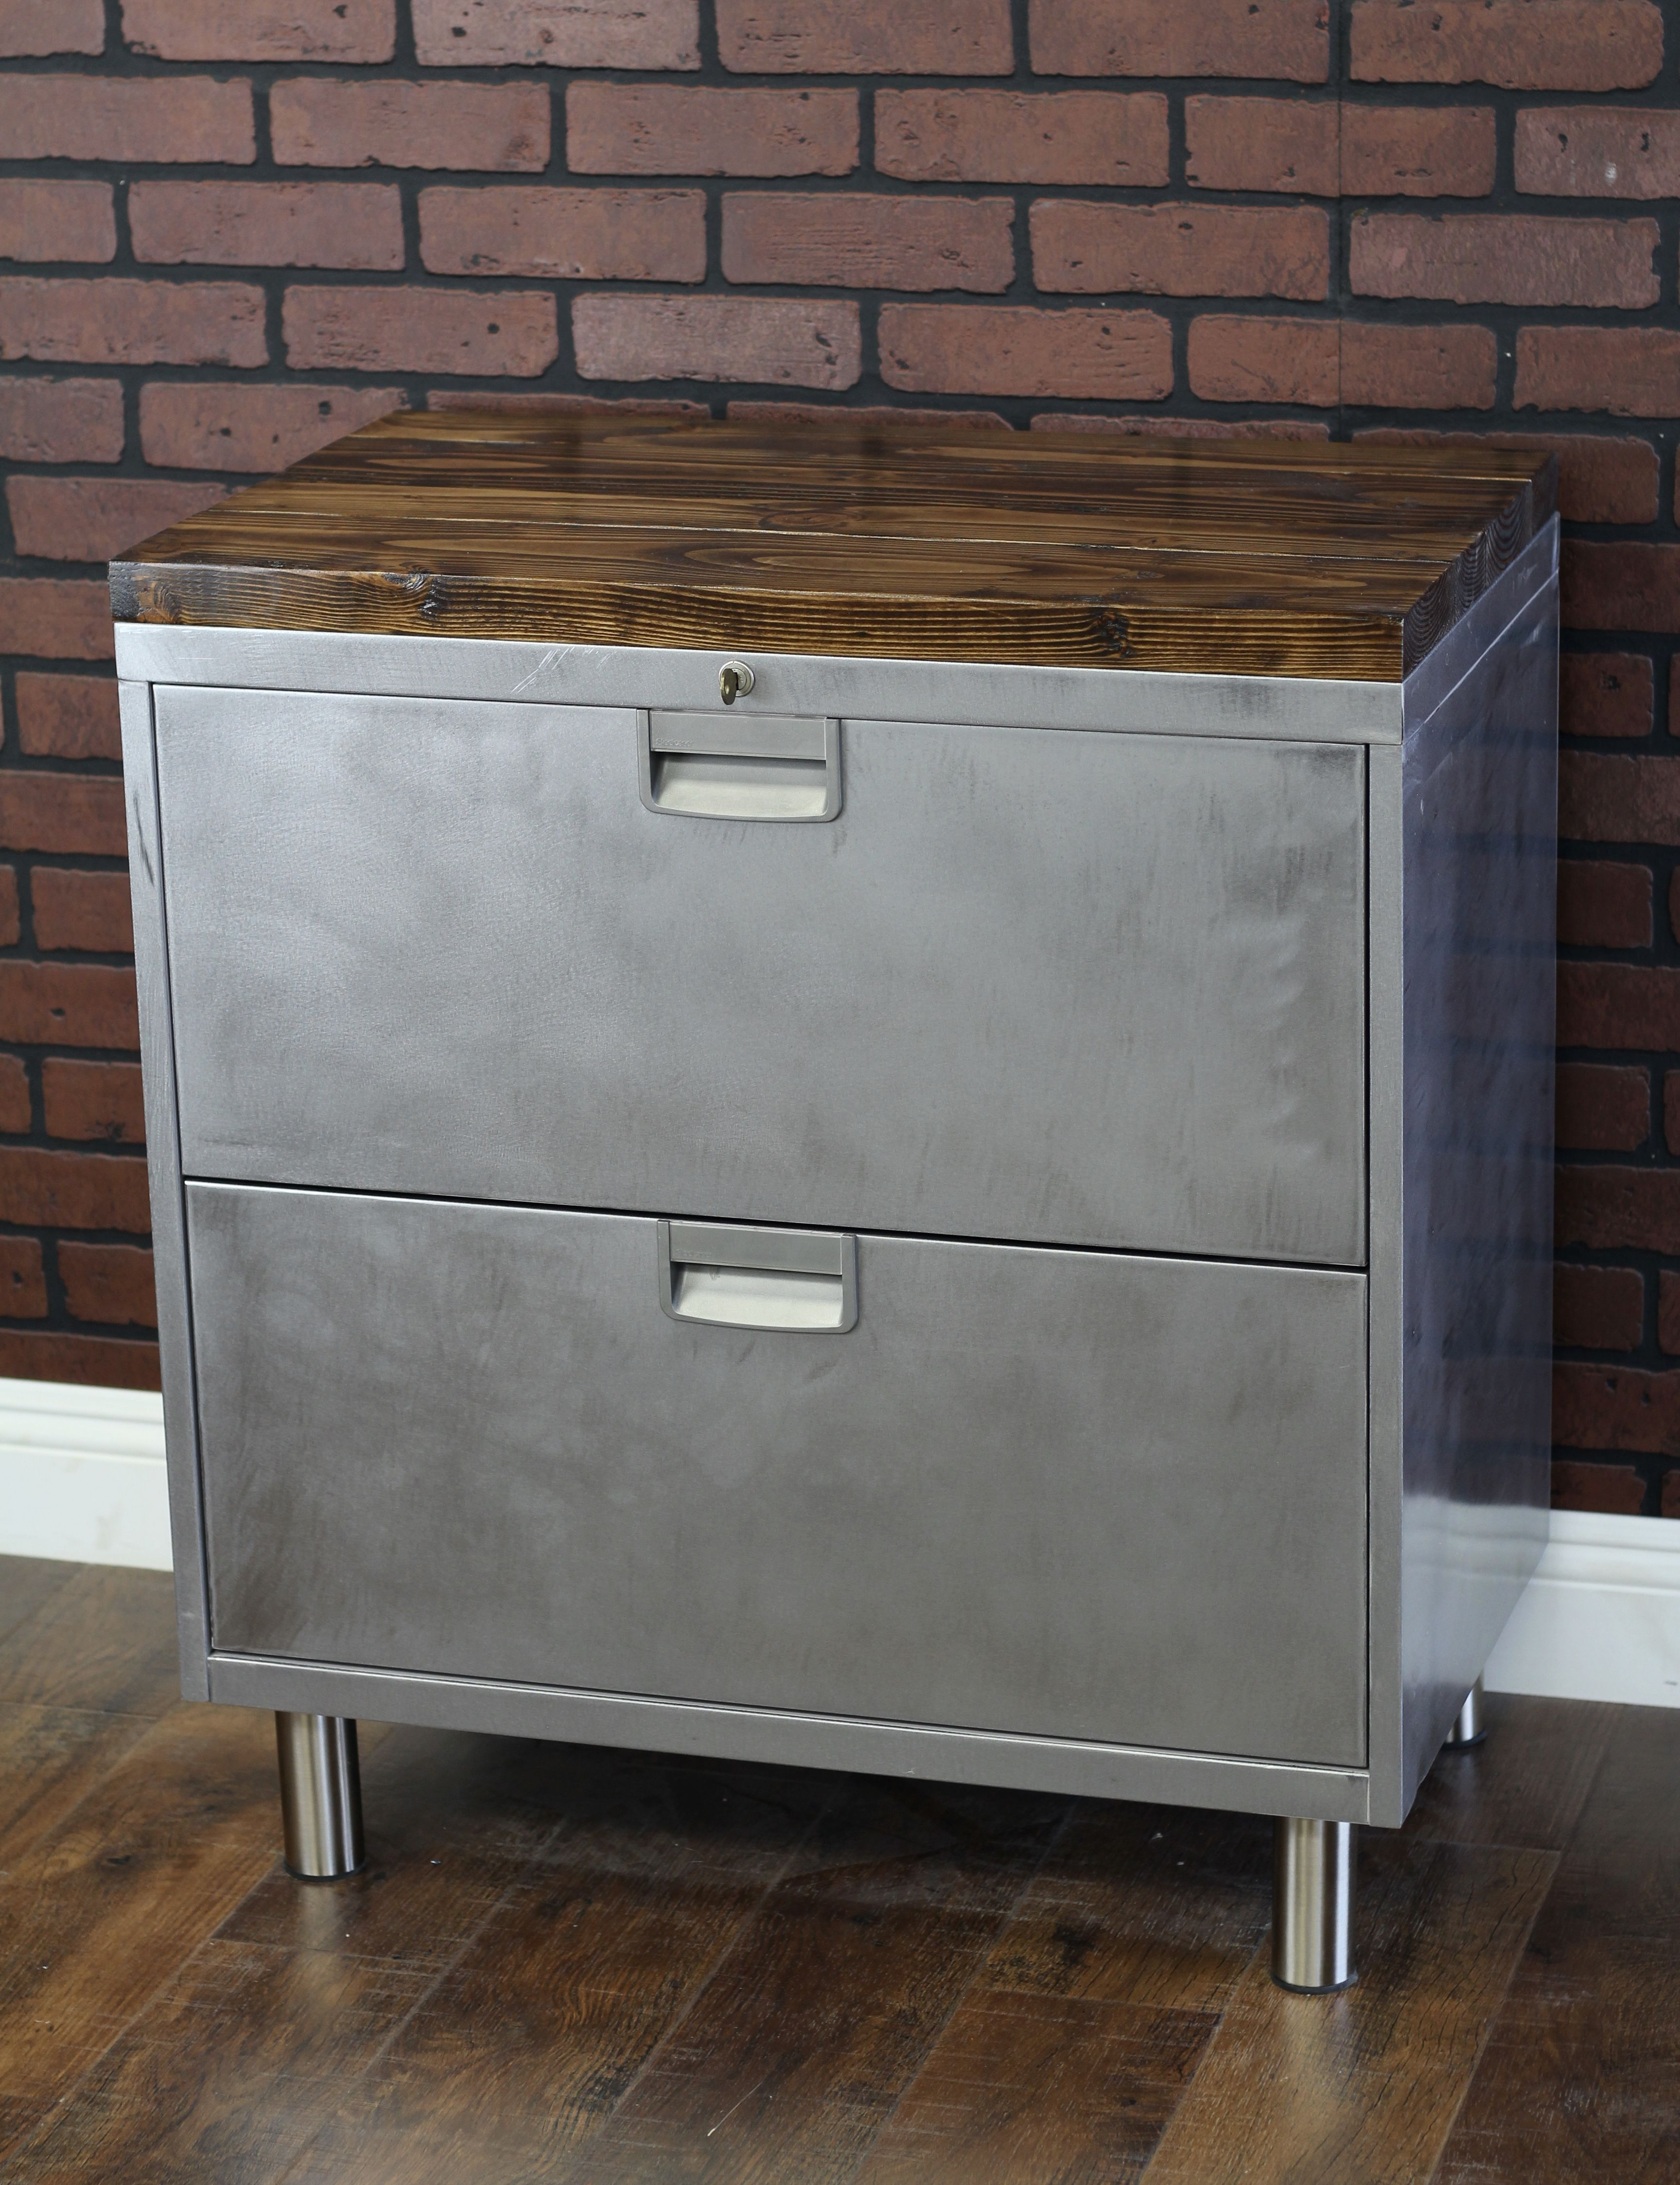 Refinished Metal Filing Cabinet 30 36 Or 42 Etsy In 2020 Filing Cabinet Metal Filing Cabinet Office Storage Cabinets